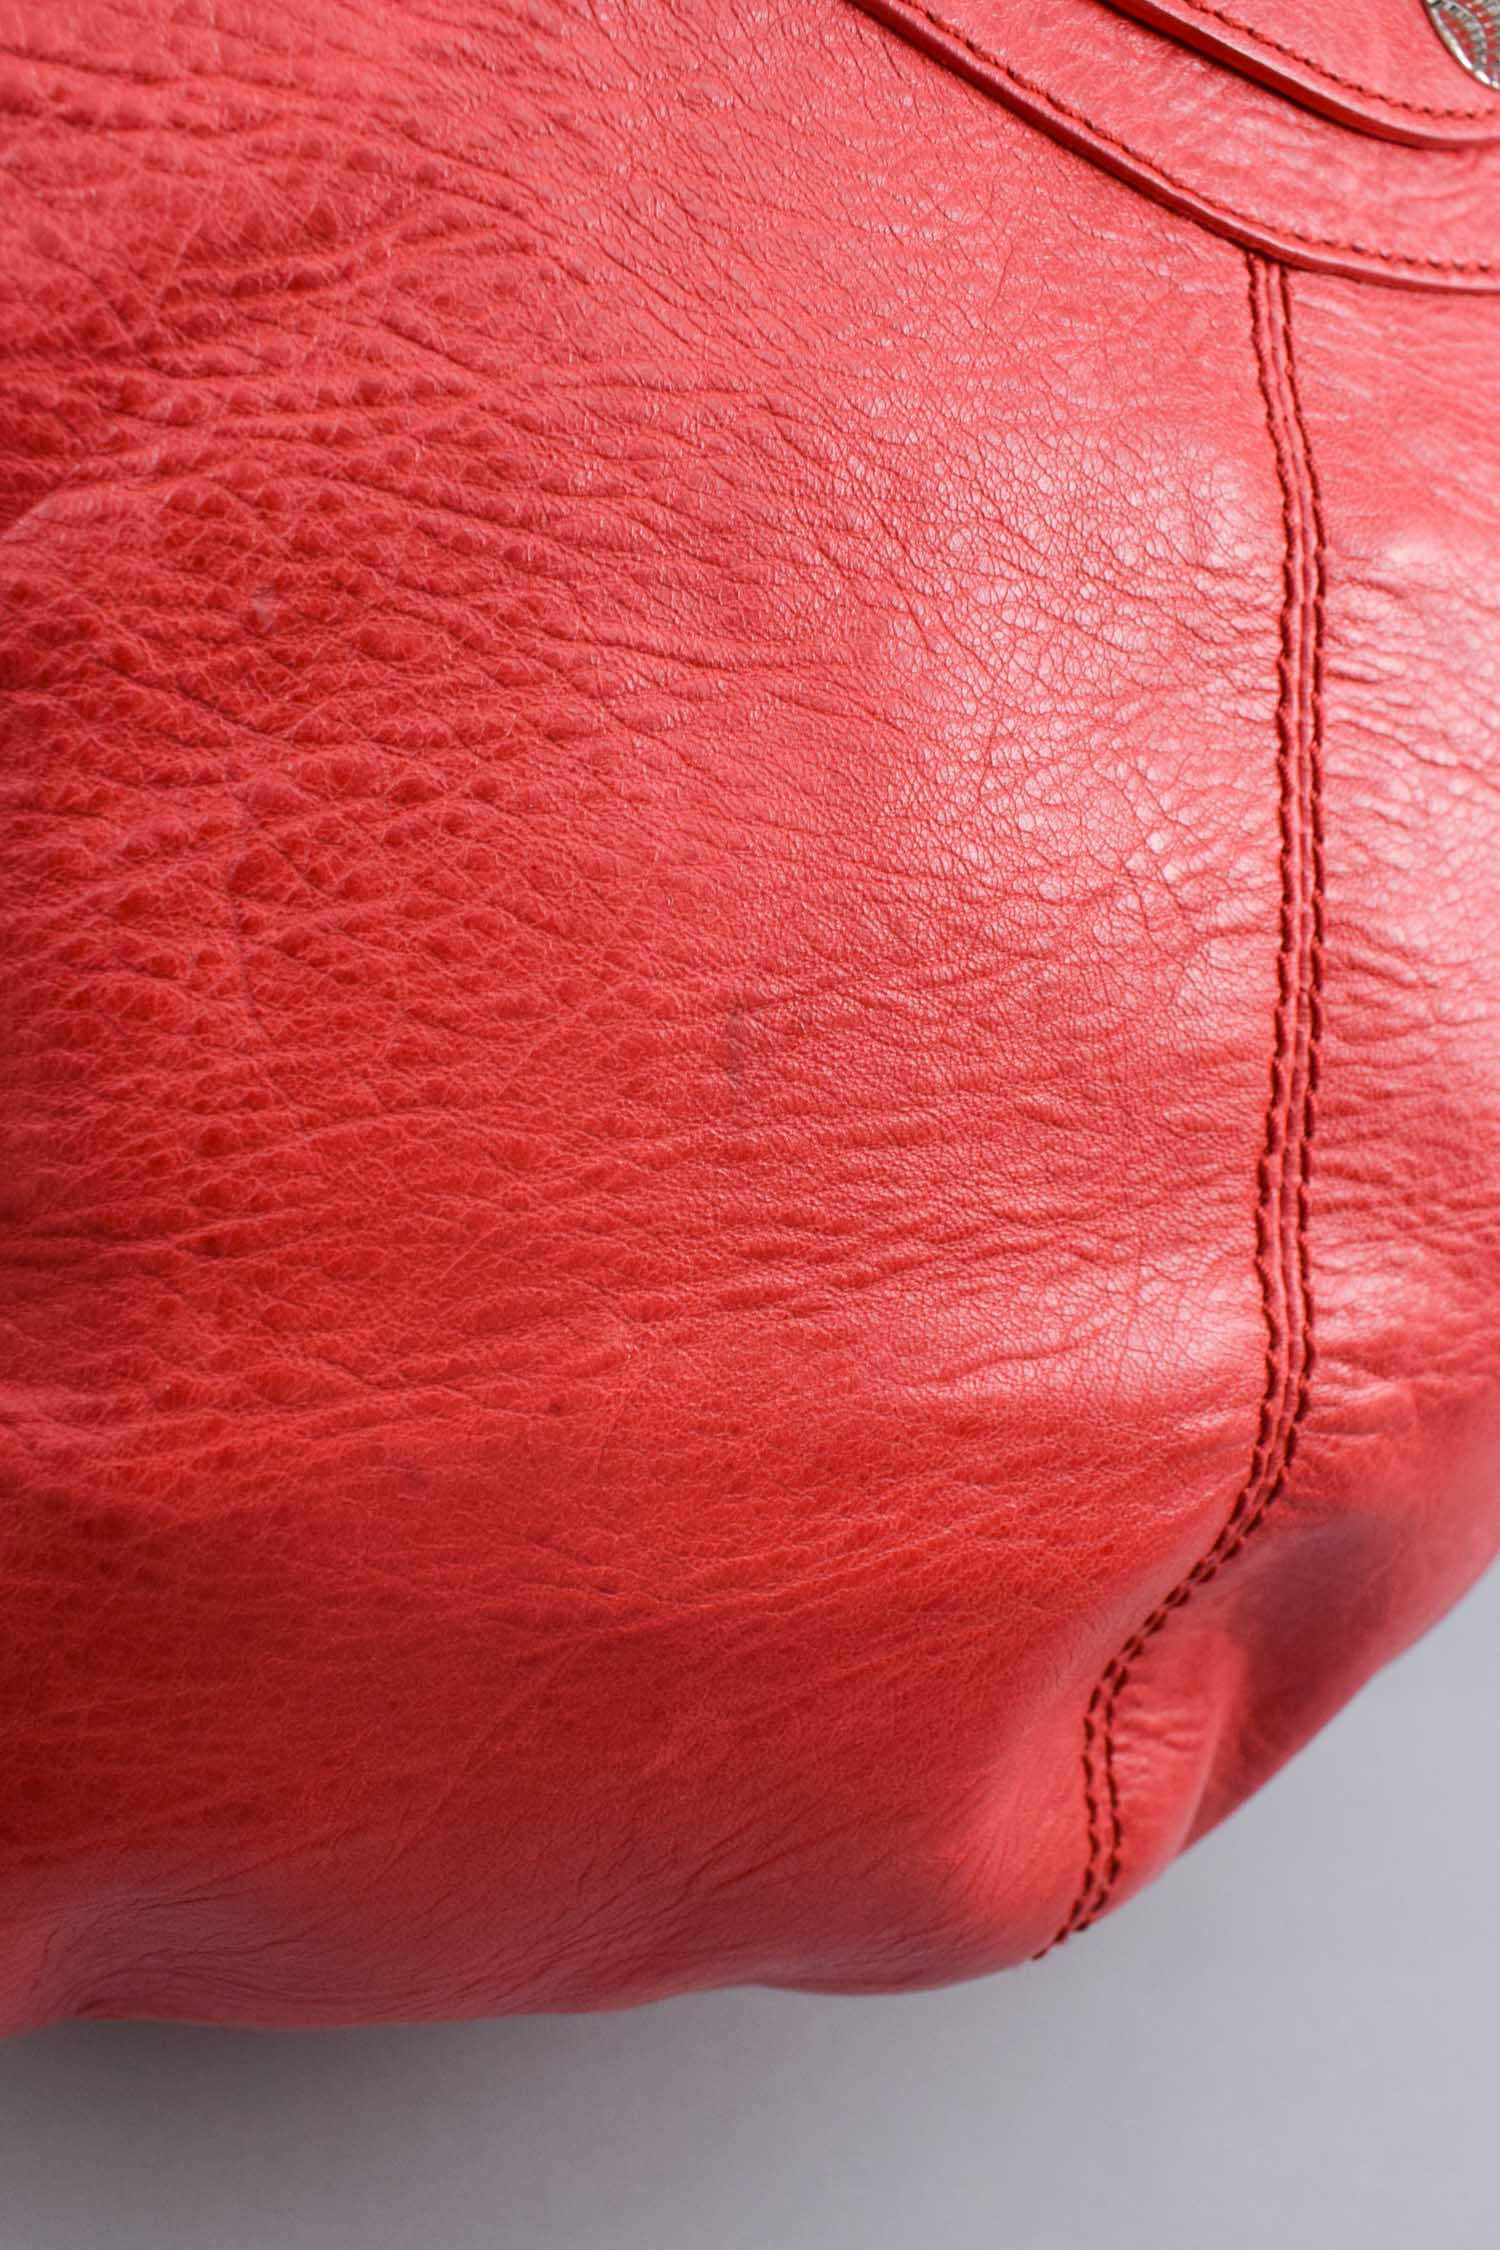 Balenciaga Red Leather Giant 21 Pompon Bucket Bag